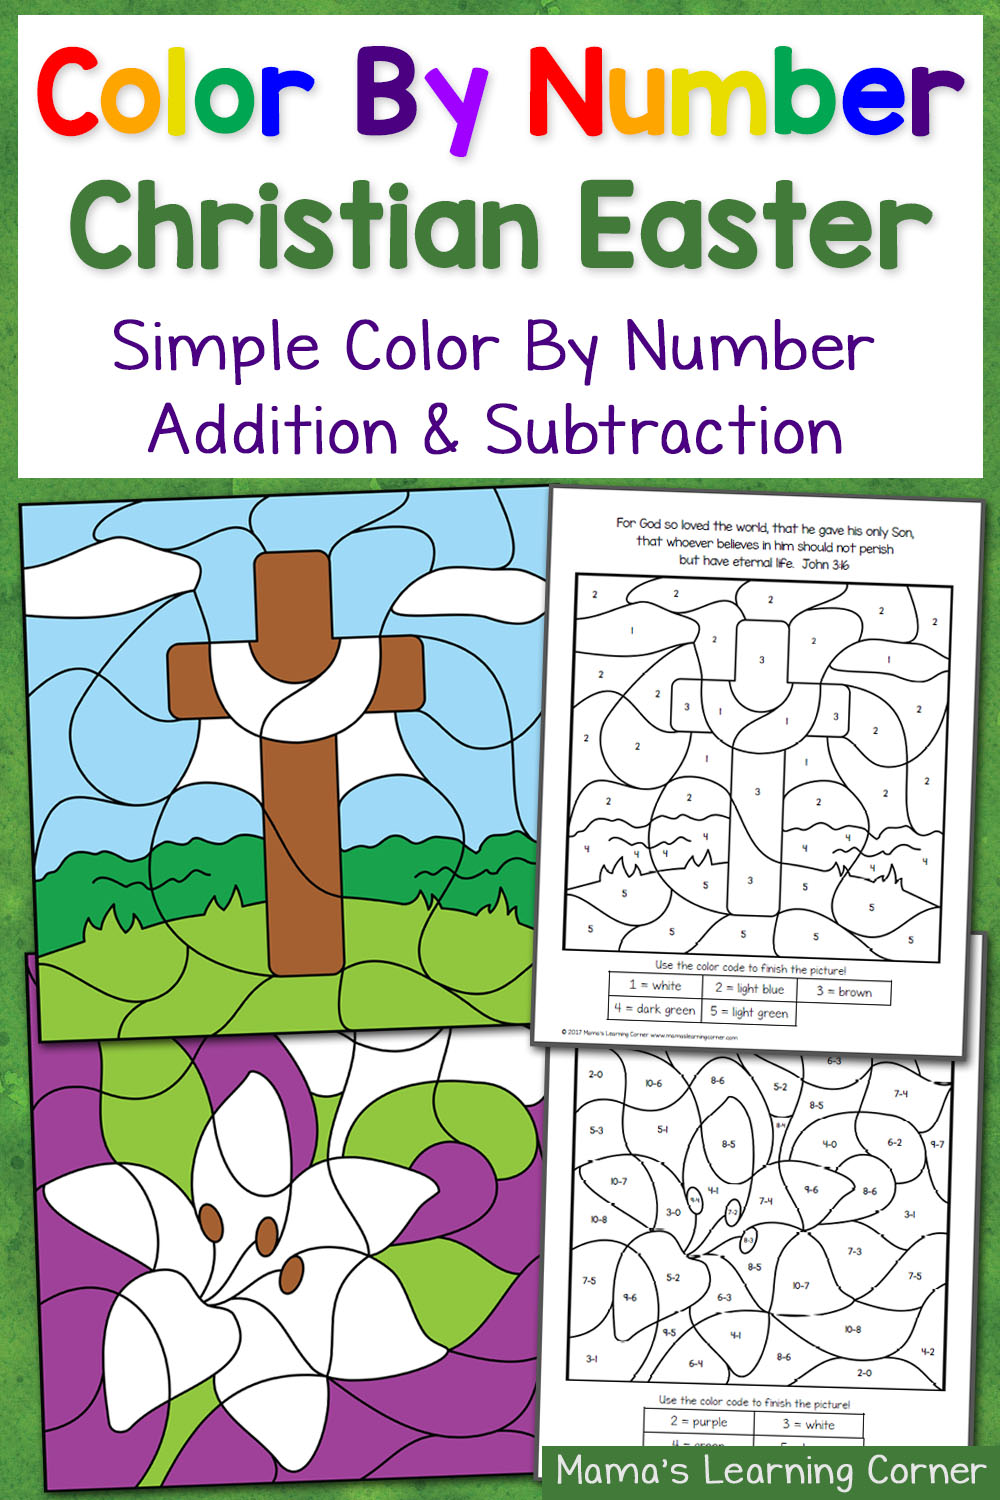 Free christian easter color by number worksheets for Easter coloring pages religious education